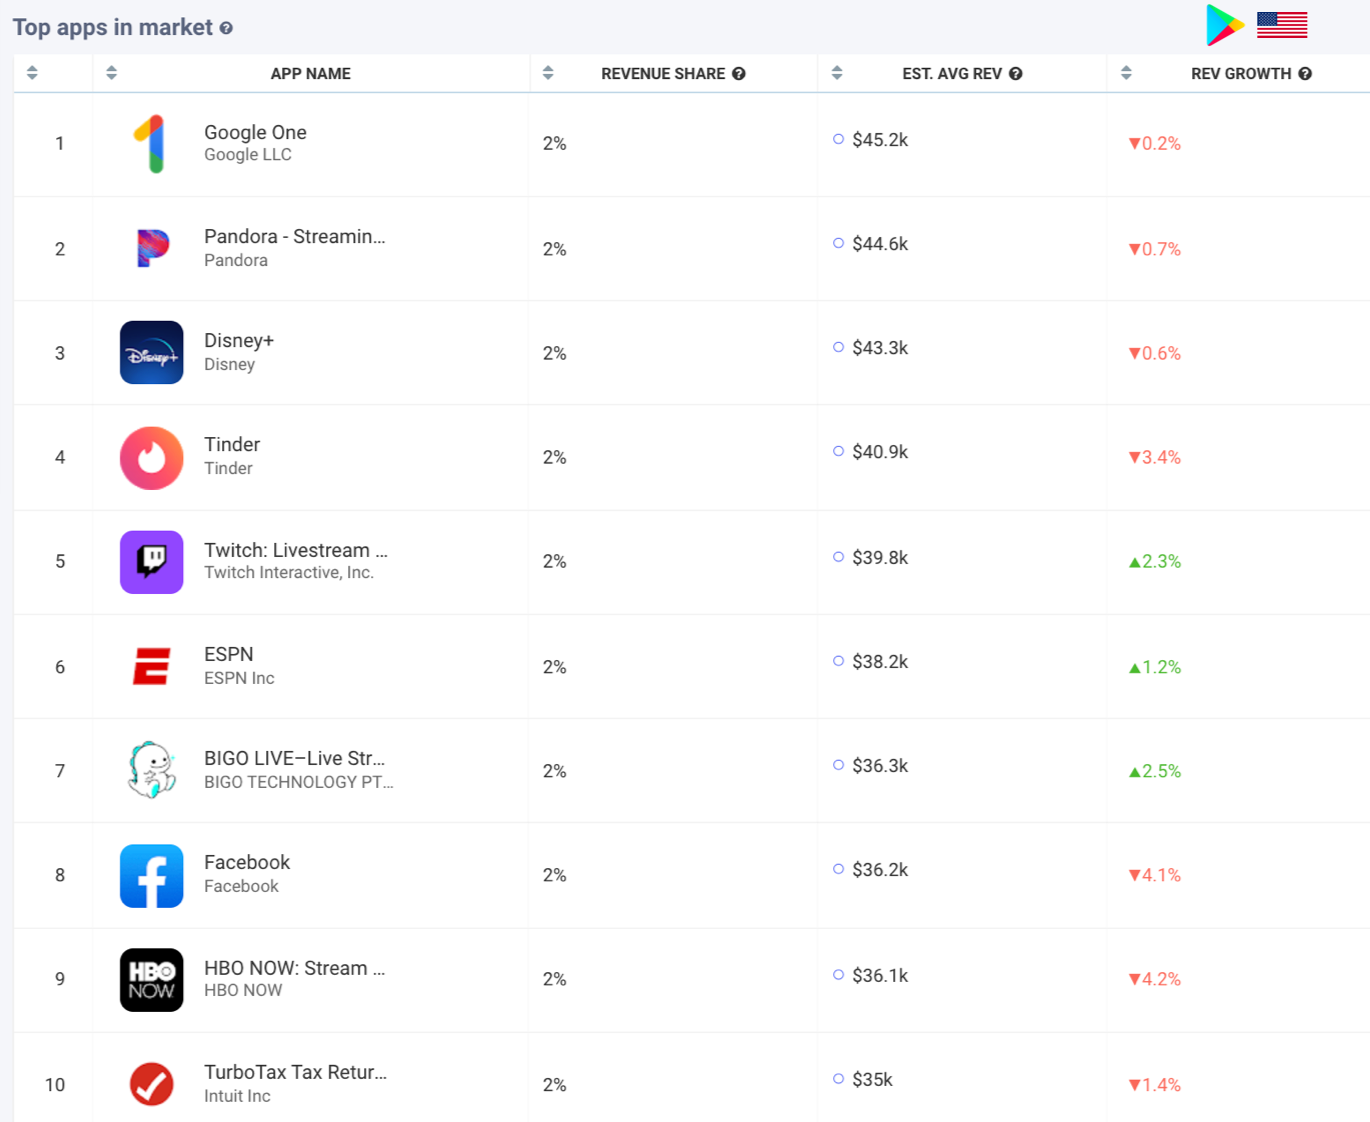 AppTweak Market Intelligence: Top Revenue Apps in the US Google Play Store